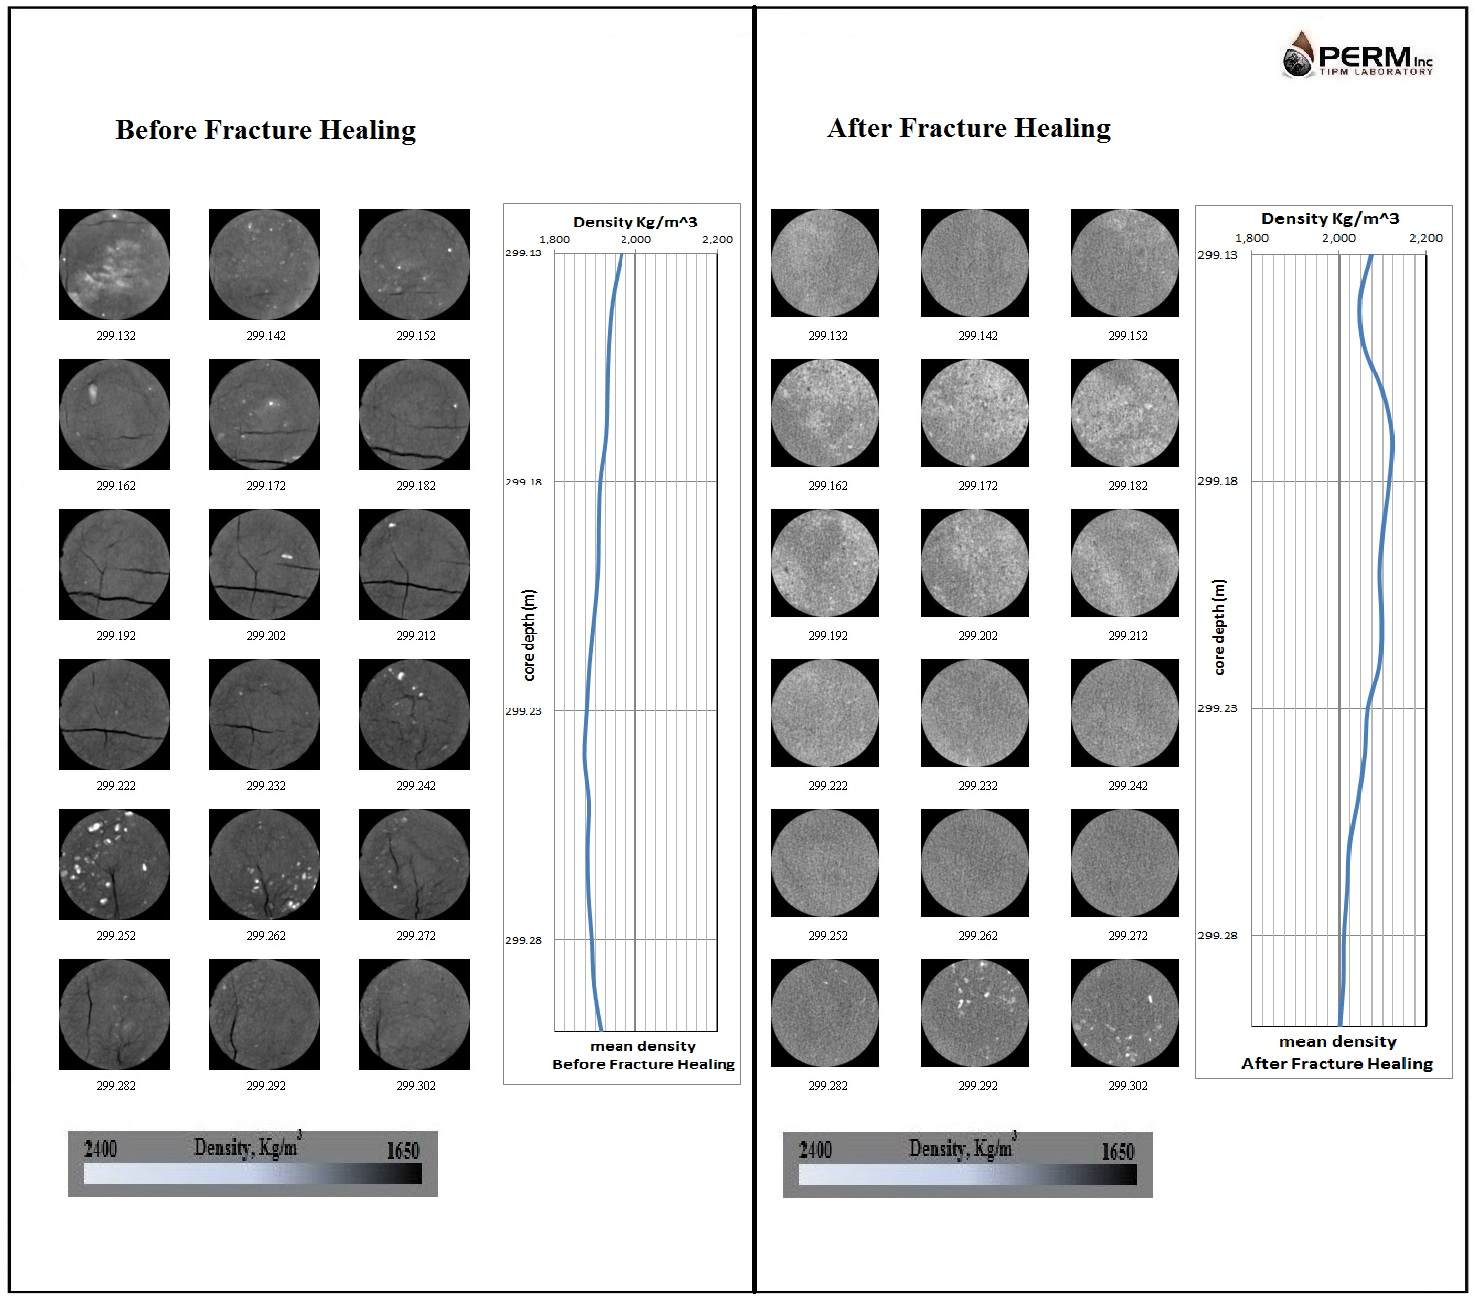 CT Scan of Unconsolidated Core in Coreholder, Before and After Fracture Healing